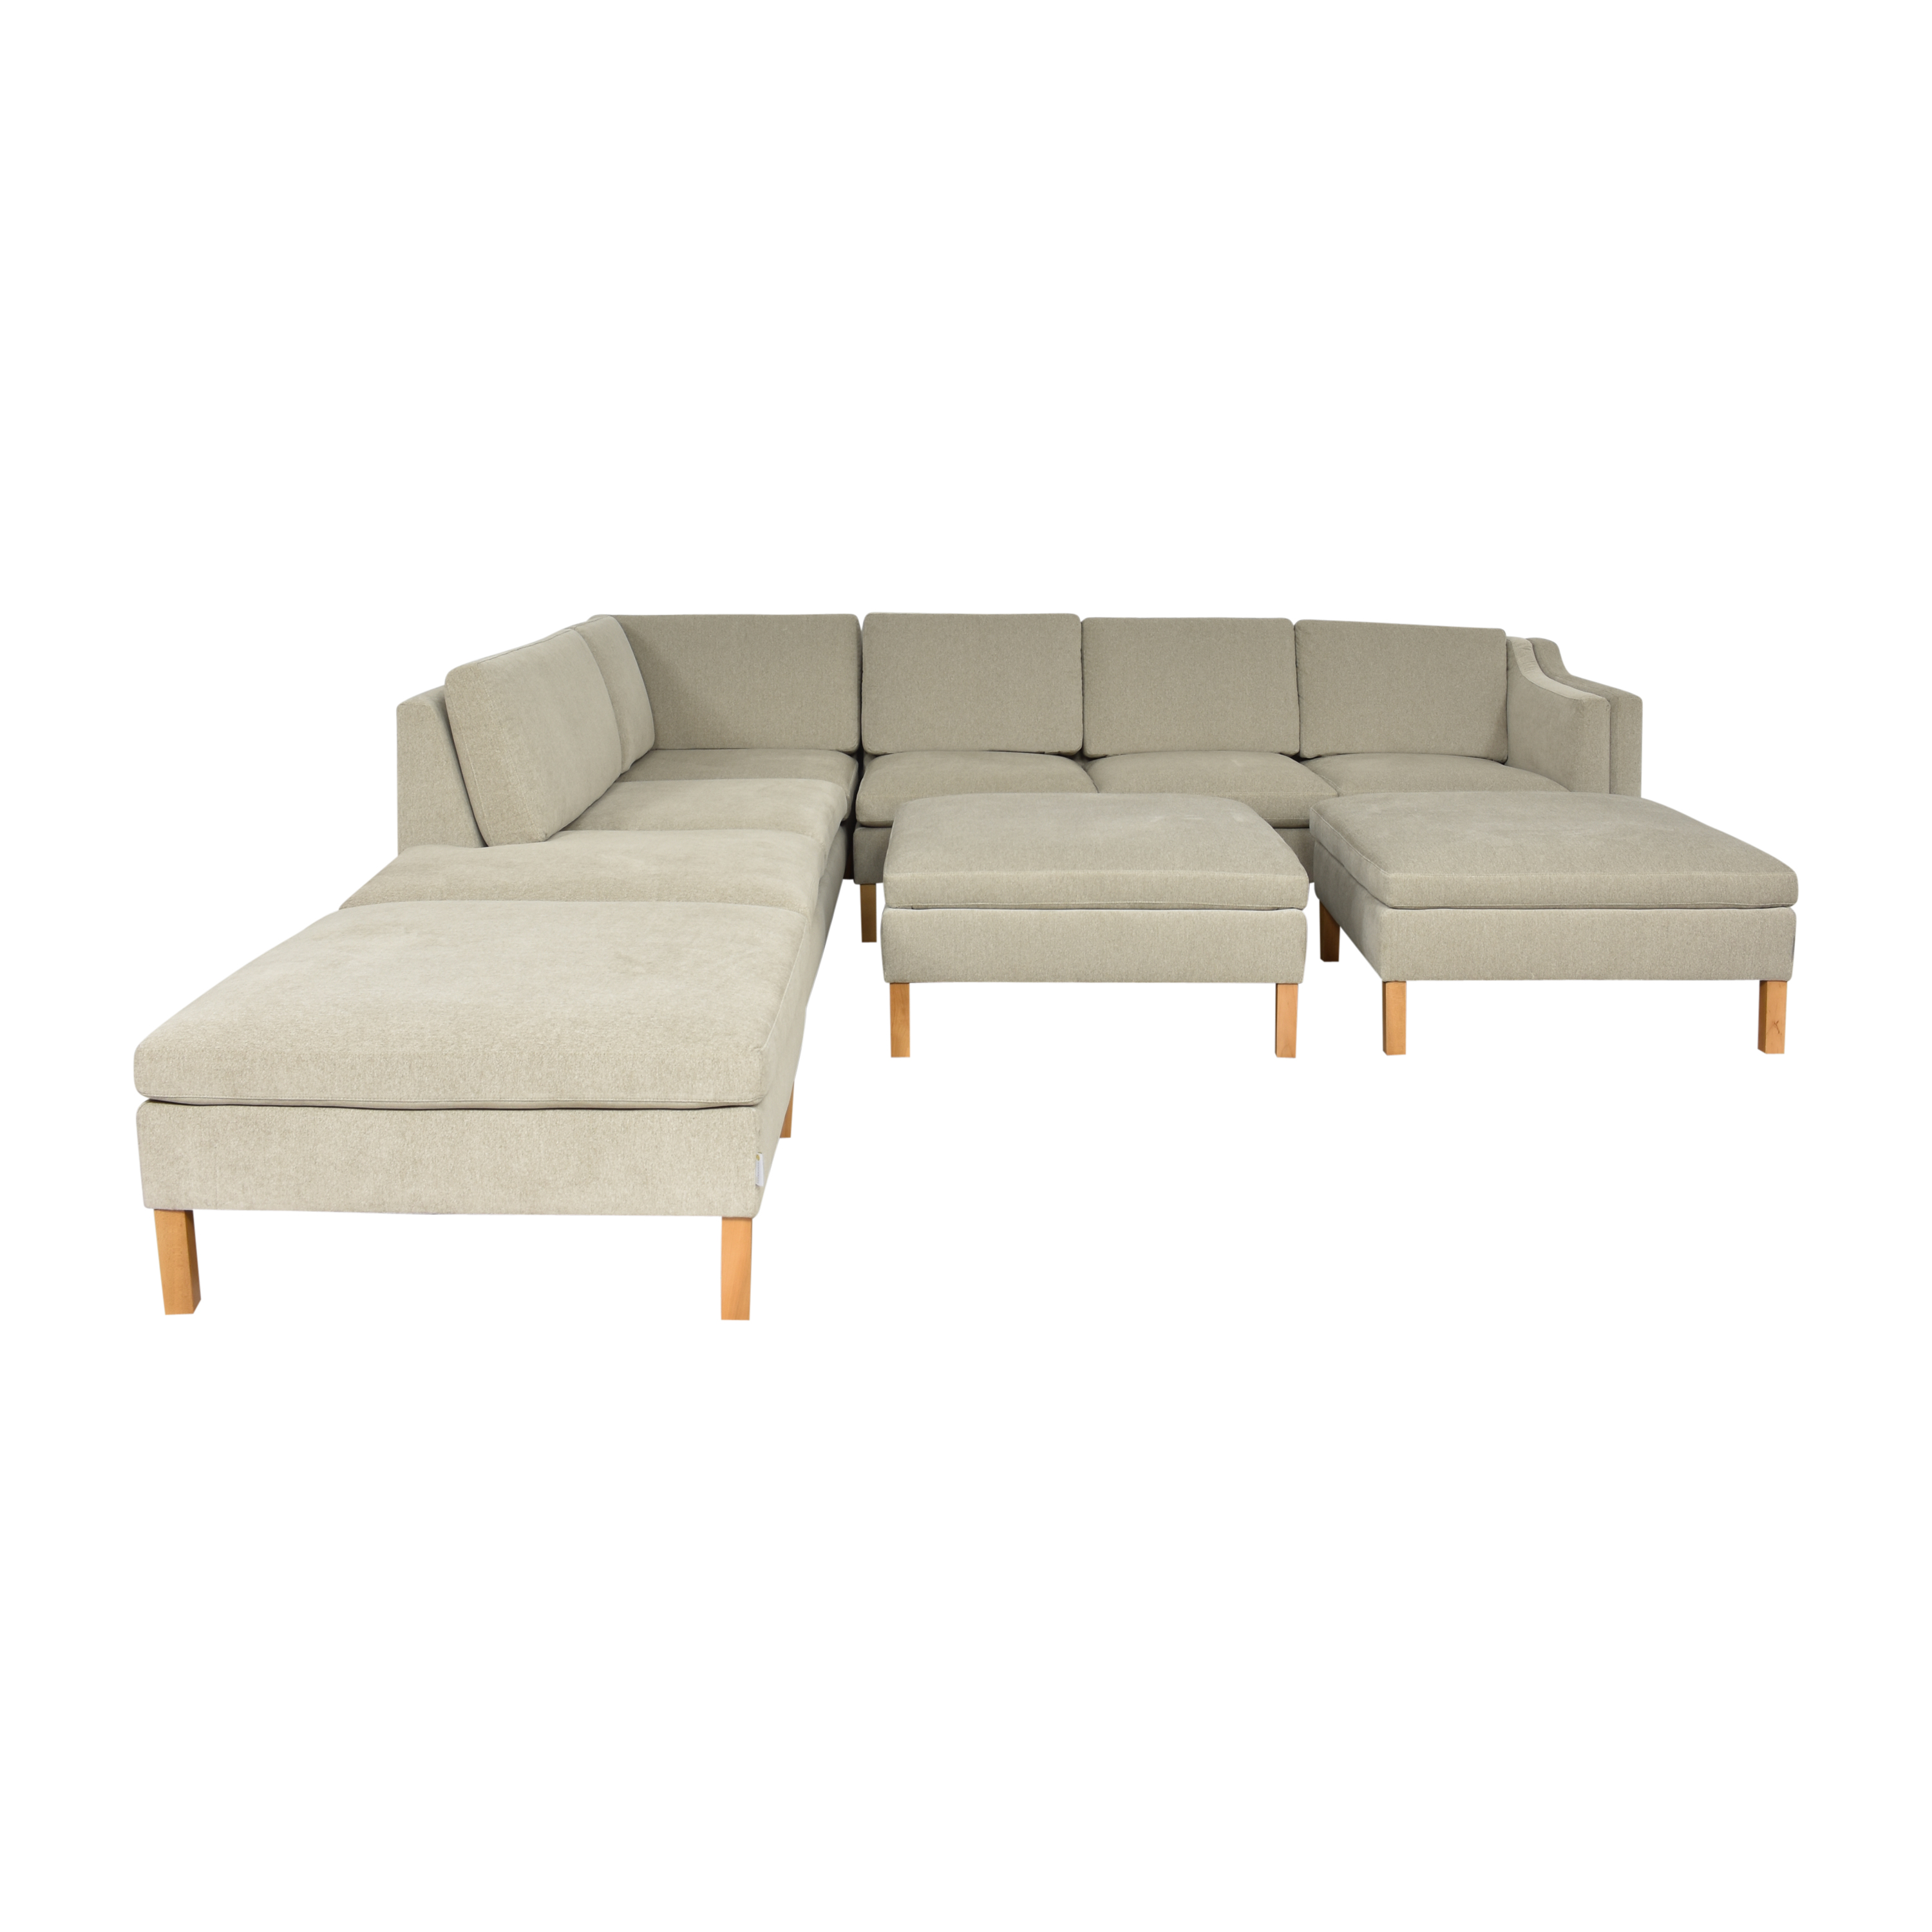 BenchMade Modern BenchMade Modern Up-Town Sectional with Bumper and Ottomans Grey